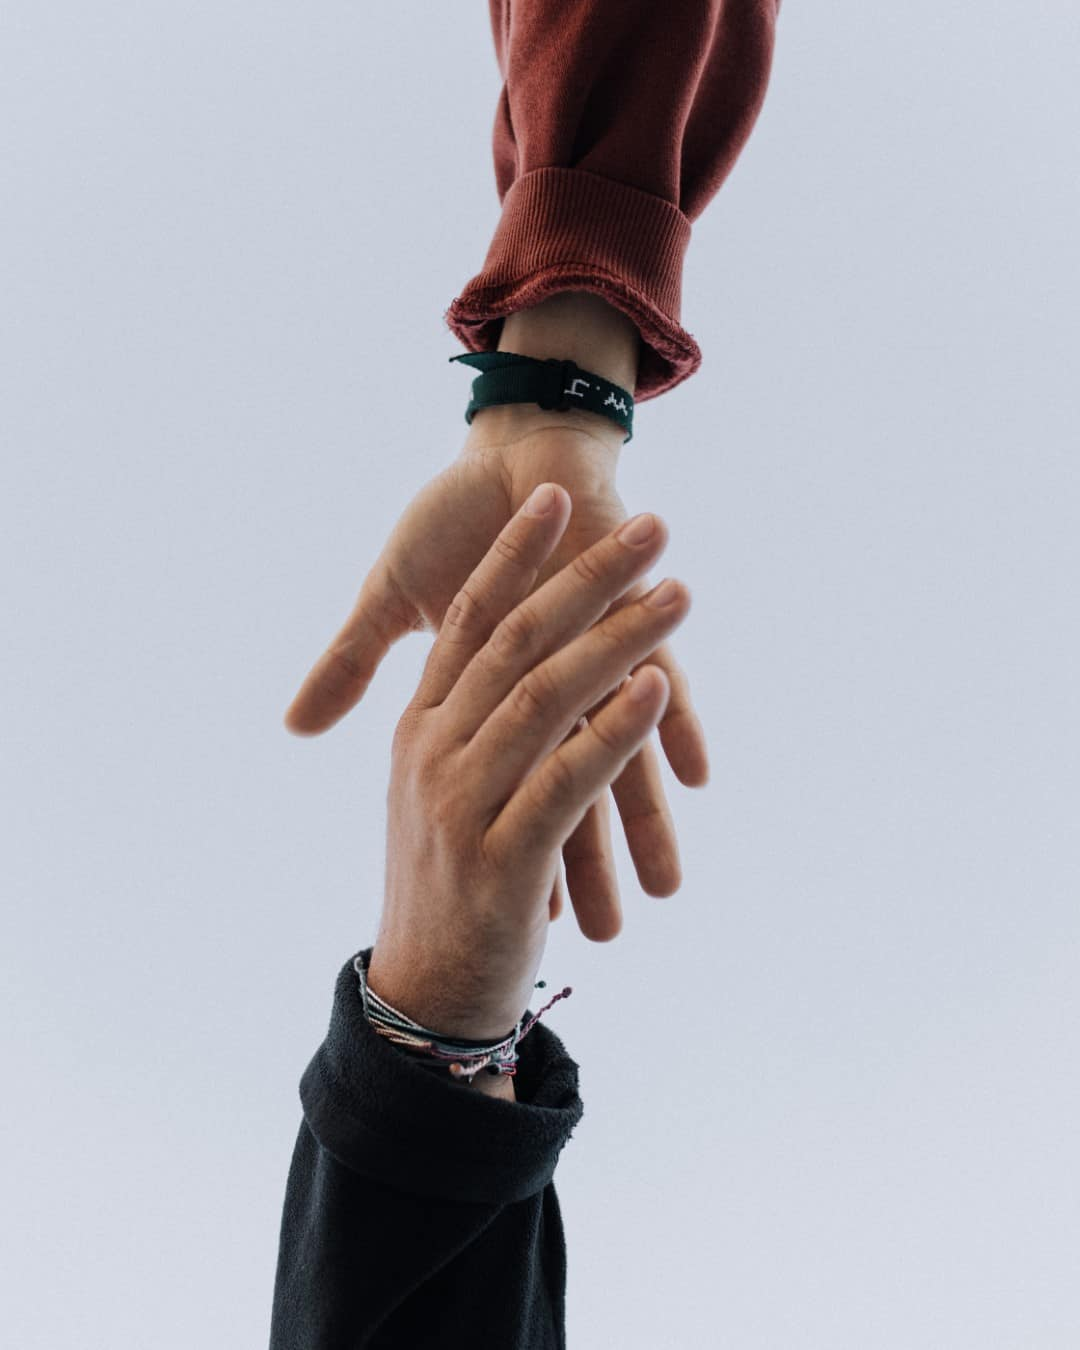 Two people grabbing each others hands